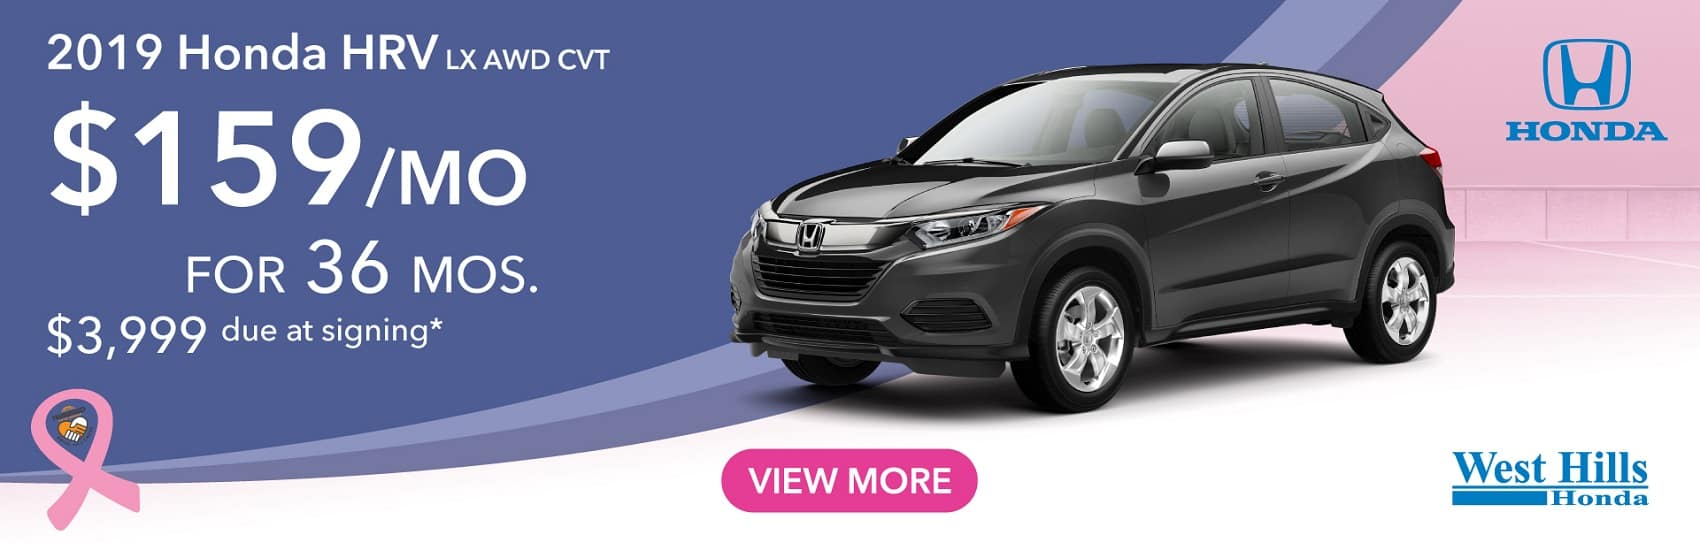 2019 Honda HR-V LX AWD CVT  (featured vehicle) $159/mo. for 36 mos. $3,999 due at signing*    *Valid on 2019 Honda HRV LX AWD CVT. $159 per mo. for 36 months. Lease with $3,999 due at signing; includes a $595 acquisition fee. Valid on VIN: 3CZRU6H34KM731957, 3CZRU6H31KM725453. MSRP $22,965. No Security deposit required. Subject to credit approval. 36 monthly payments required. Not all lessees will qualify for lowest payment through participating lender. Residency restrictions apply. Lessee responsible for maintenance, excessive wear/tear and mileage over 12,000 miles per year at $0.15/mile. Option to purchase at lease end. Excludes state and local taxes, tags, registration and title, insurance and dealer charges. A negotiable dealer documentary service fee of up to $150 may be added to the sale price or capitalized cost. Offer expires 10/31/2019.